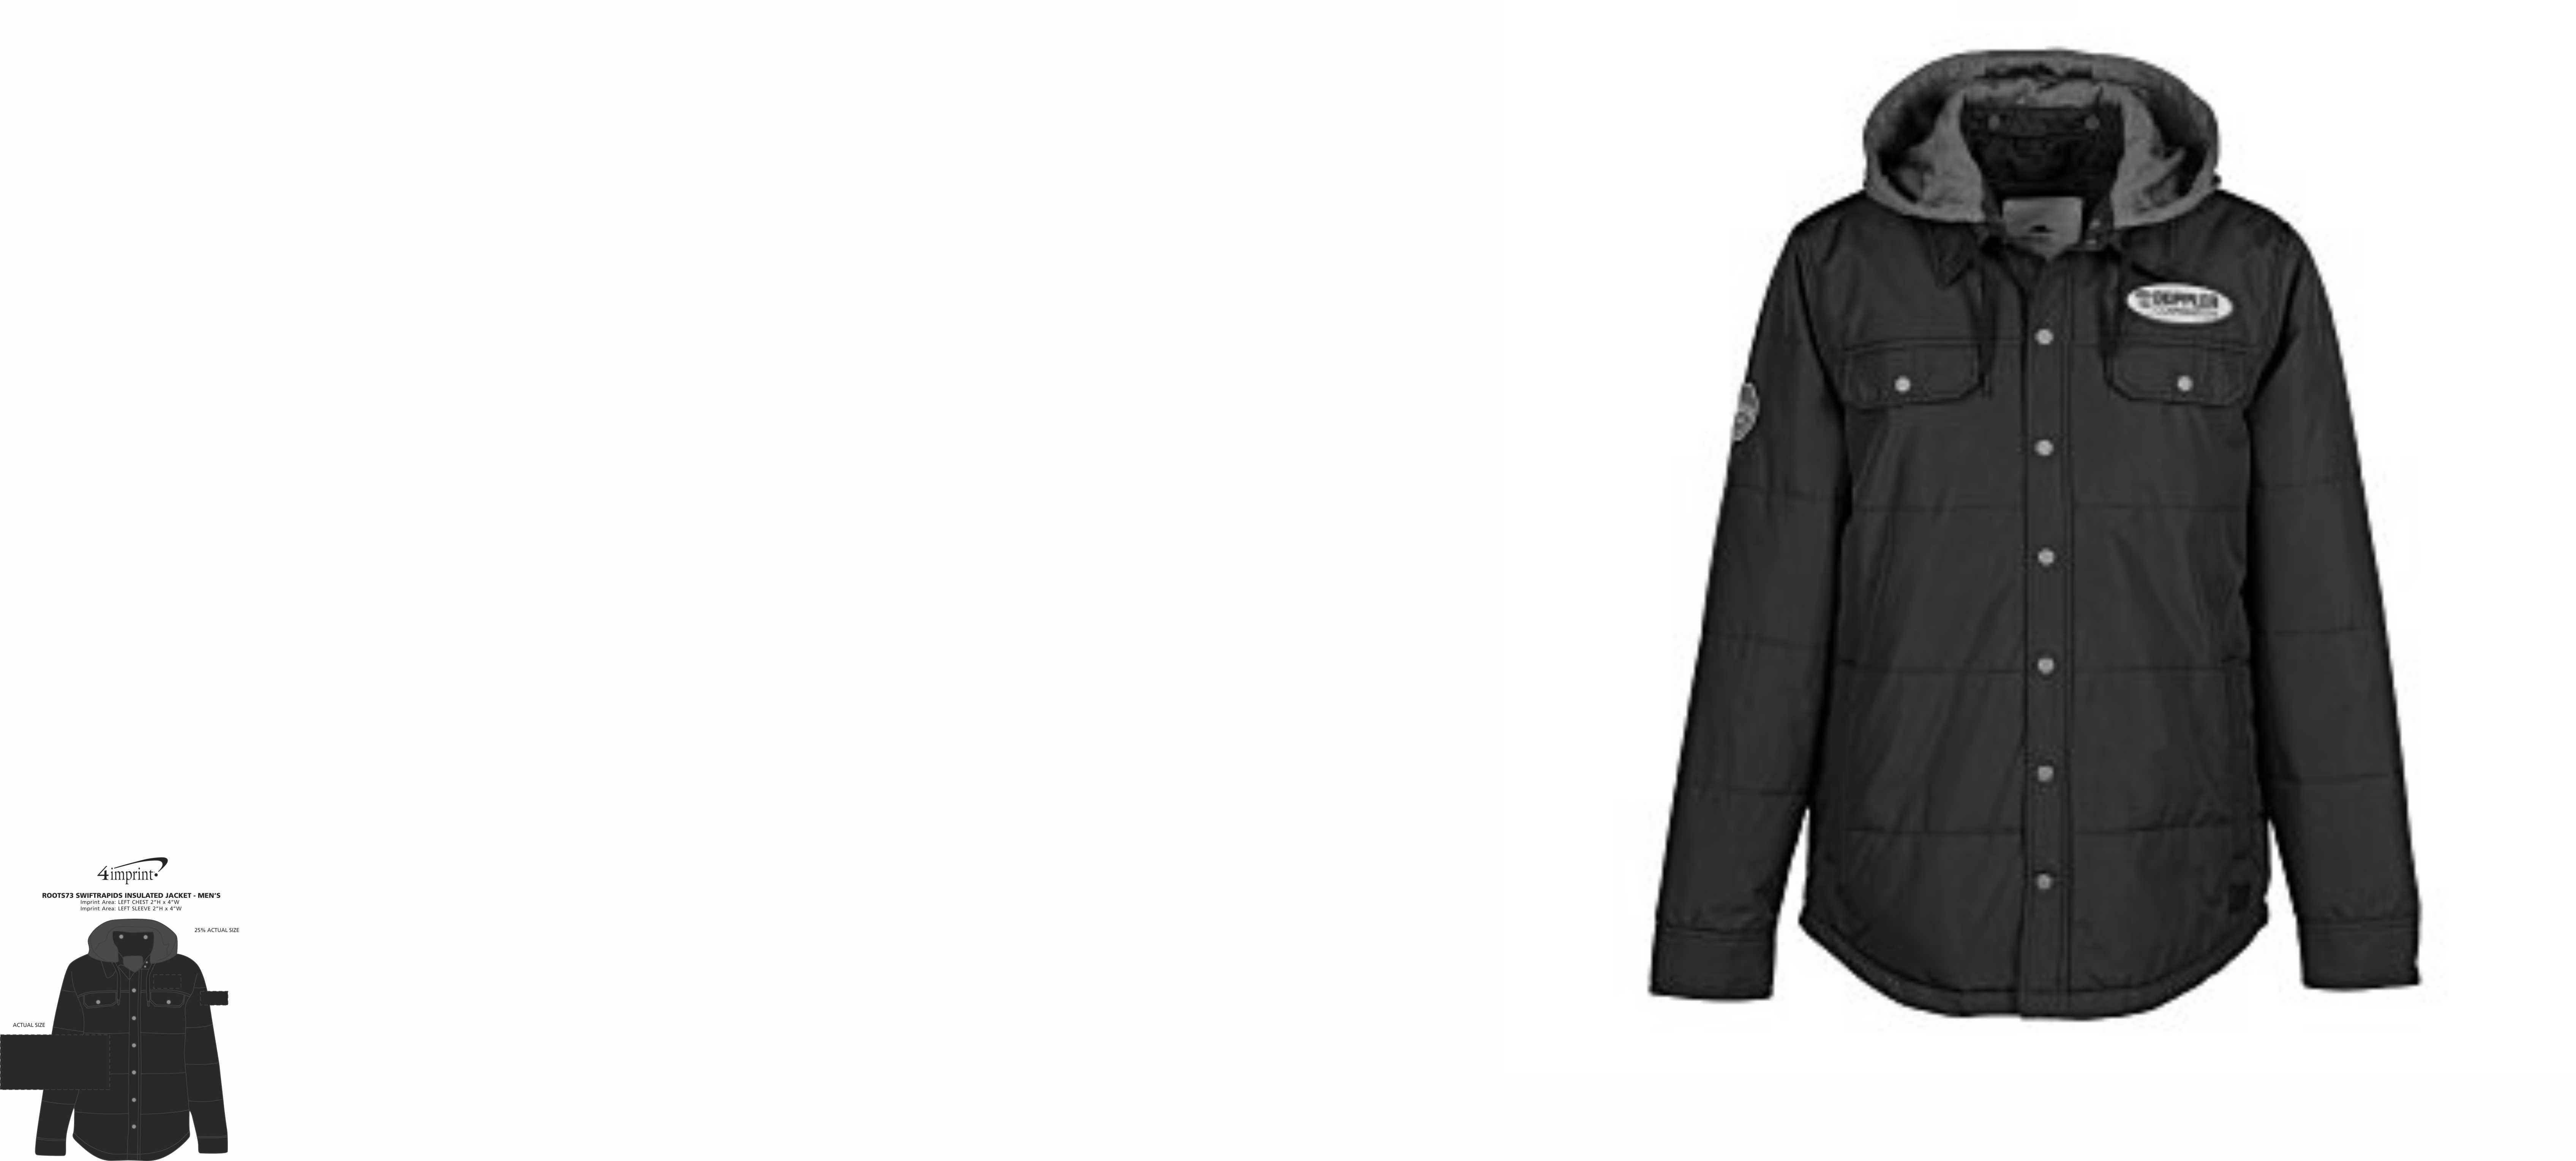 Imprint Area of Roots73 Swiftrapids Insulated Jacket - Men's